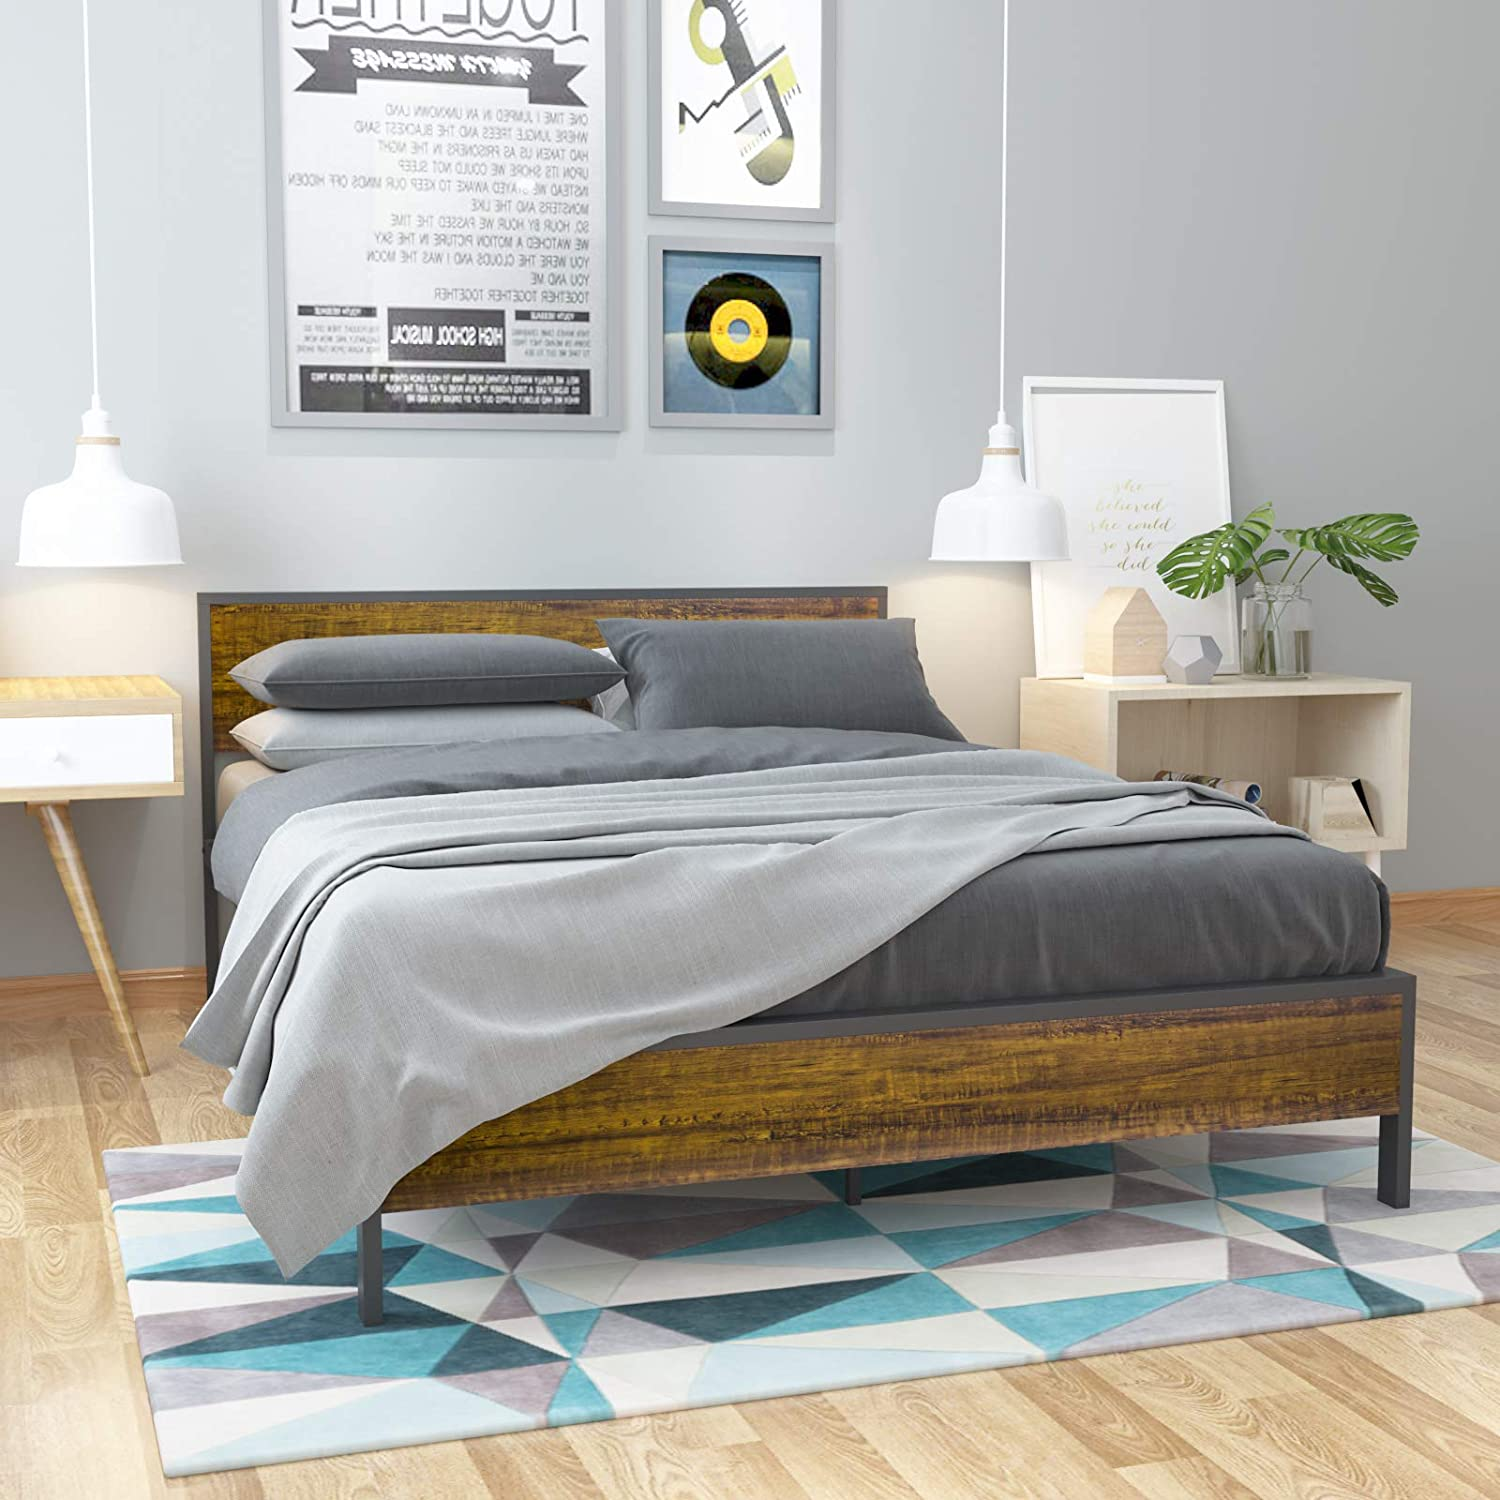 """Black Queen Bed Frame Metal Platform Bed with Headboard and Footboard 82/"""" x 62/"""""""